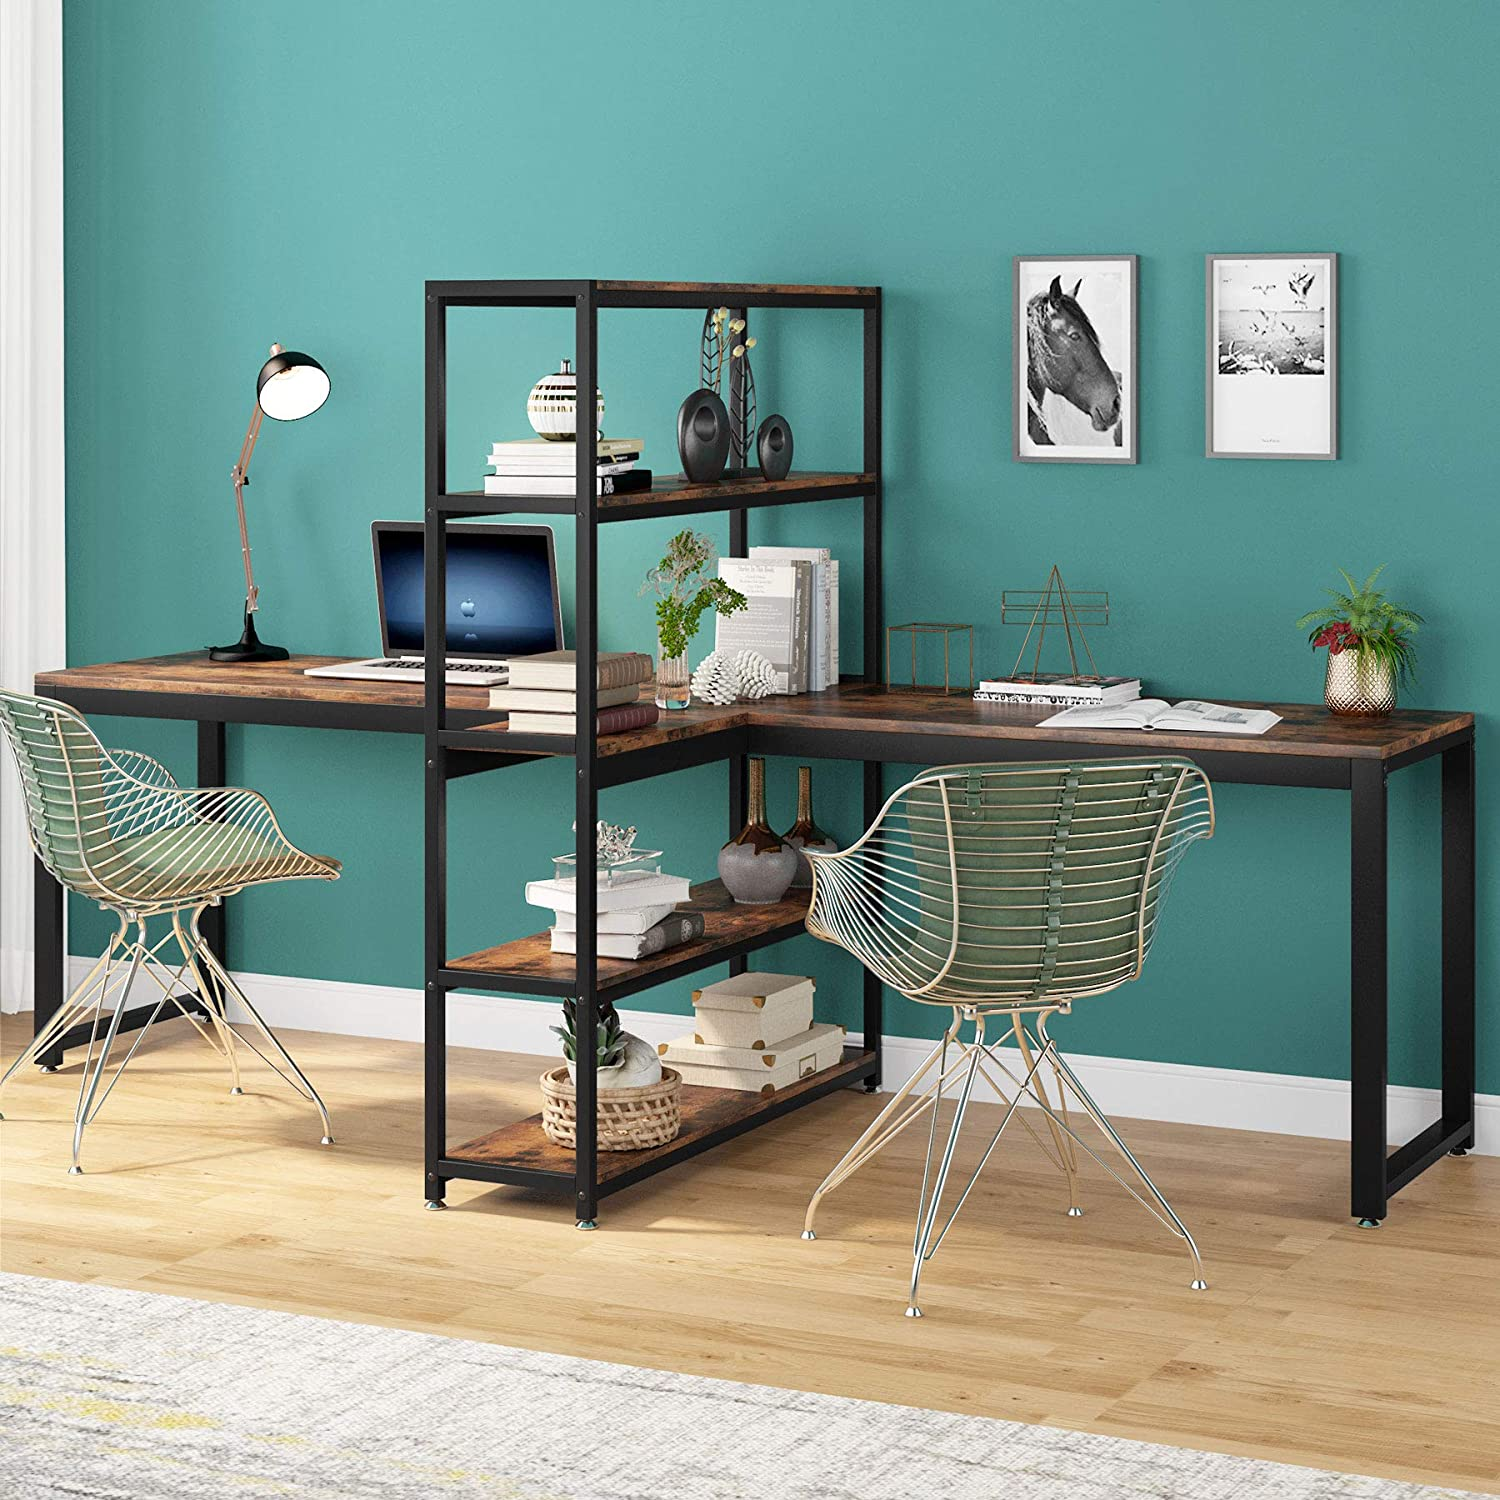 Tribesigns Complete Free Shipping Two Person Computer Desk 90 Do SALENEW very popular Bookshelf Inches with